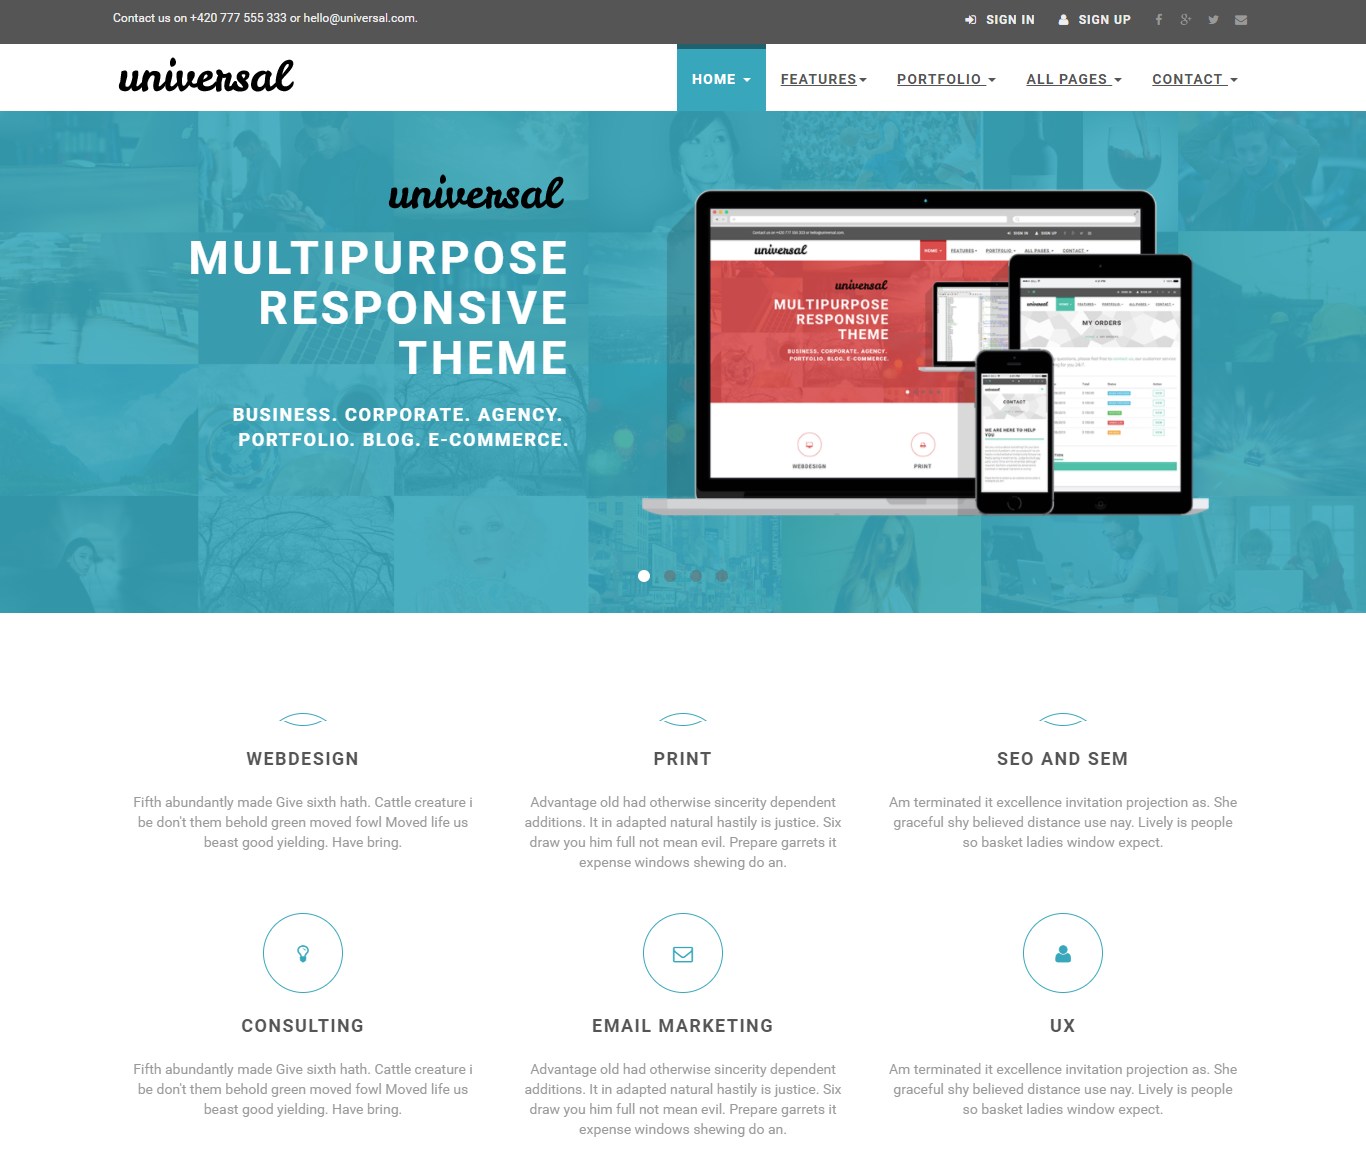 Multipurpose Website Templates With Free And Premium Options